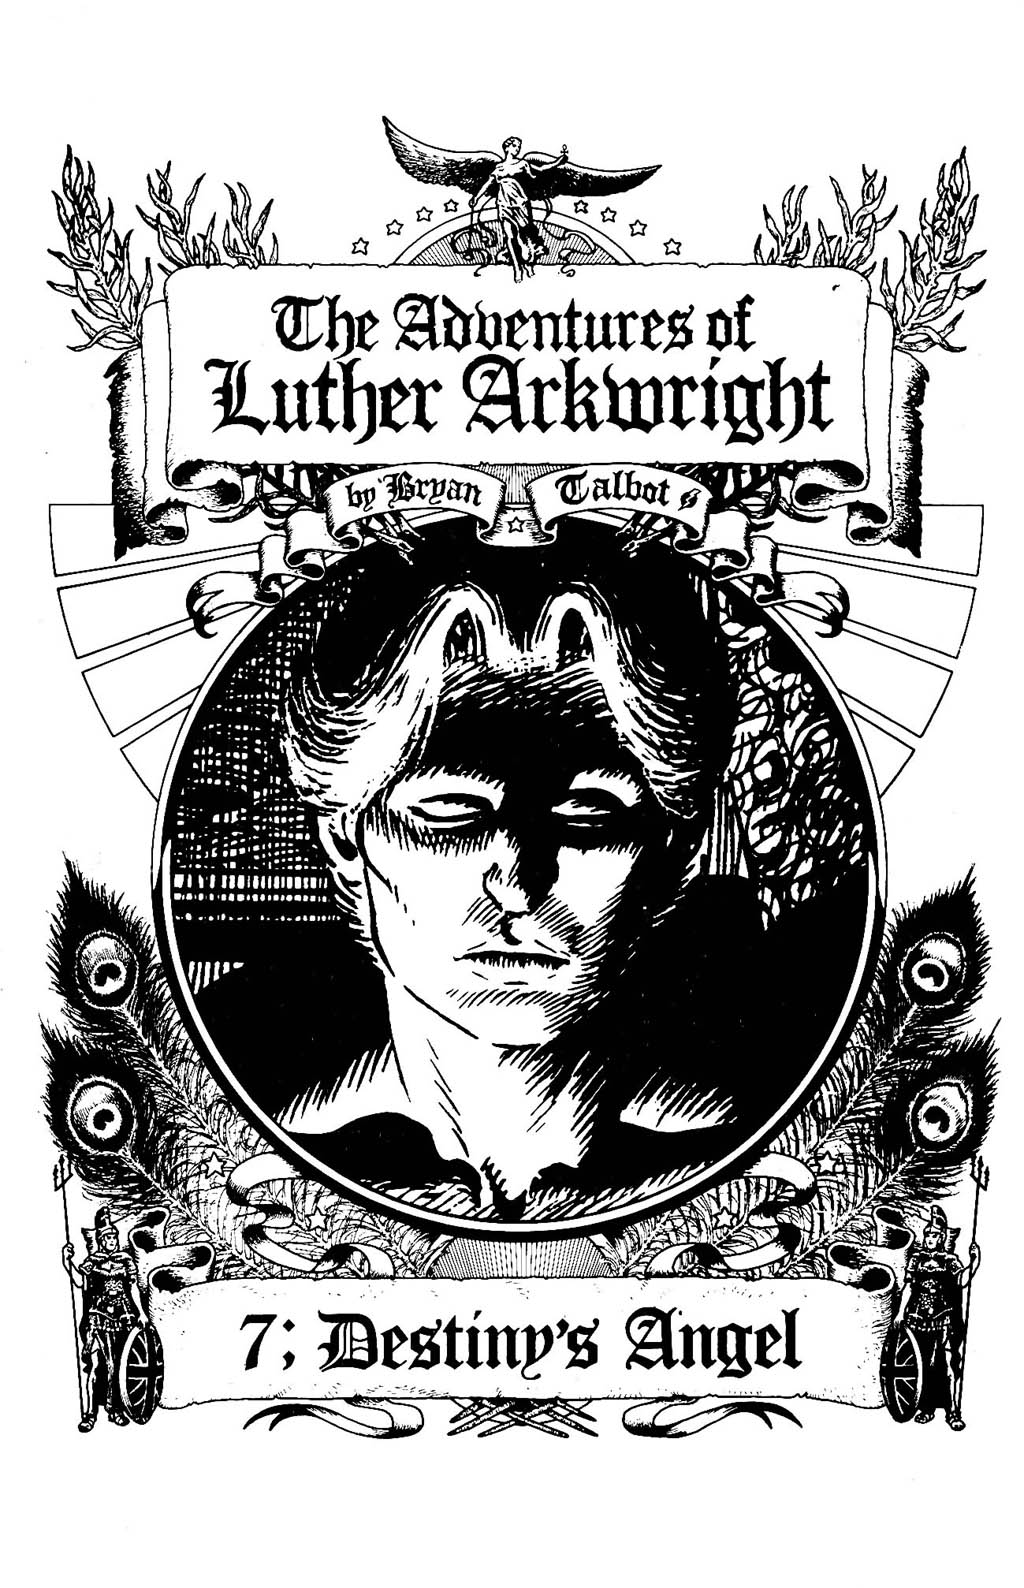 Read online The Adventures of Luther Arkwright comic -  Issue #7 - 3